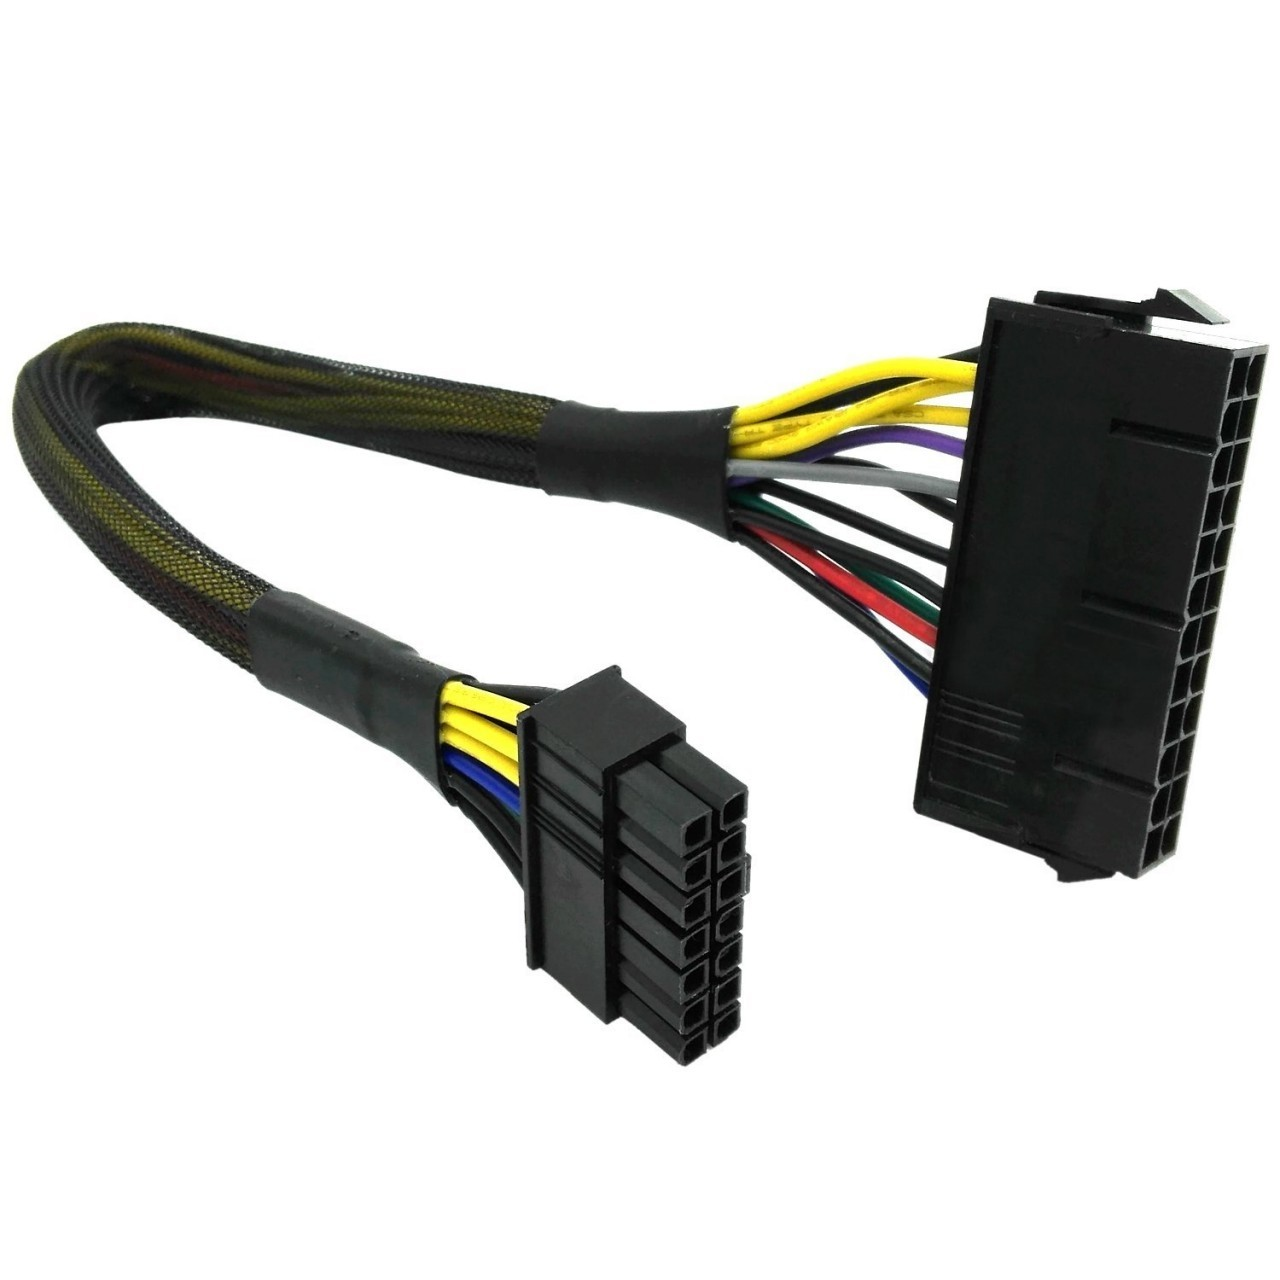 lenovo psu main power 24 pin to 14 pin adapter cable. Black Bedroom Furniture Sets. Home Design Ideas